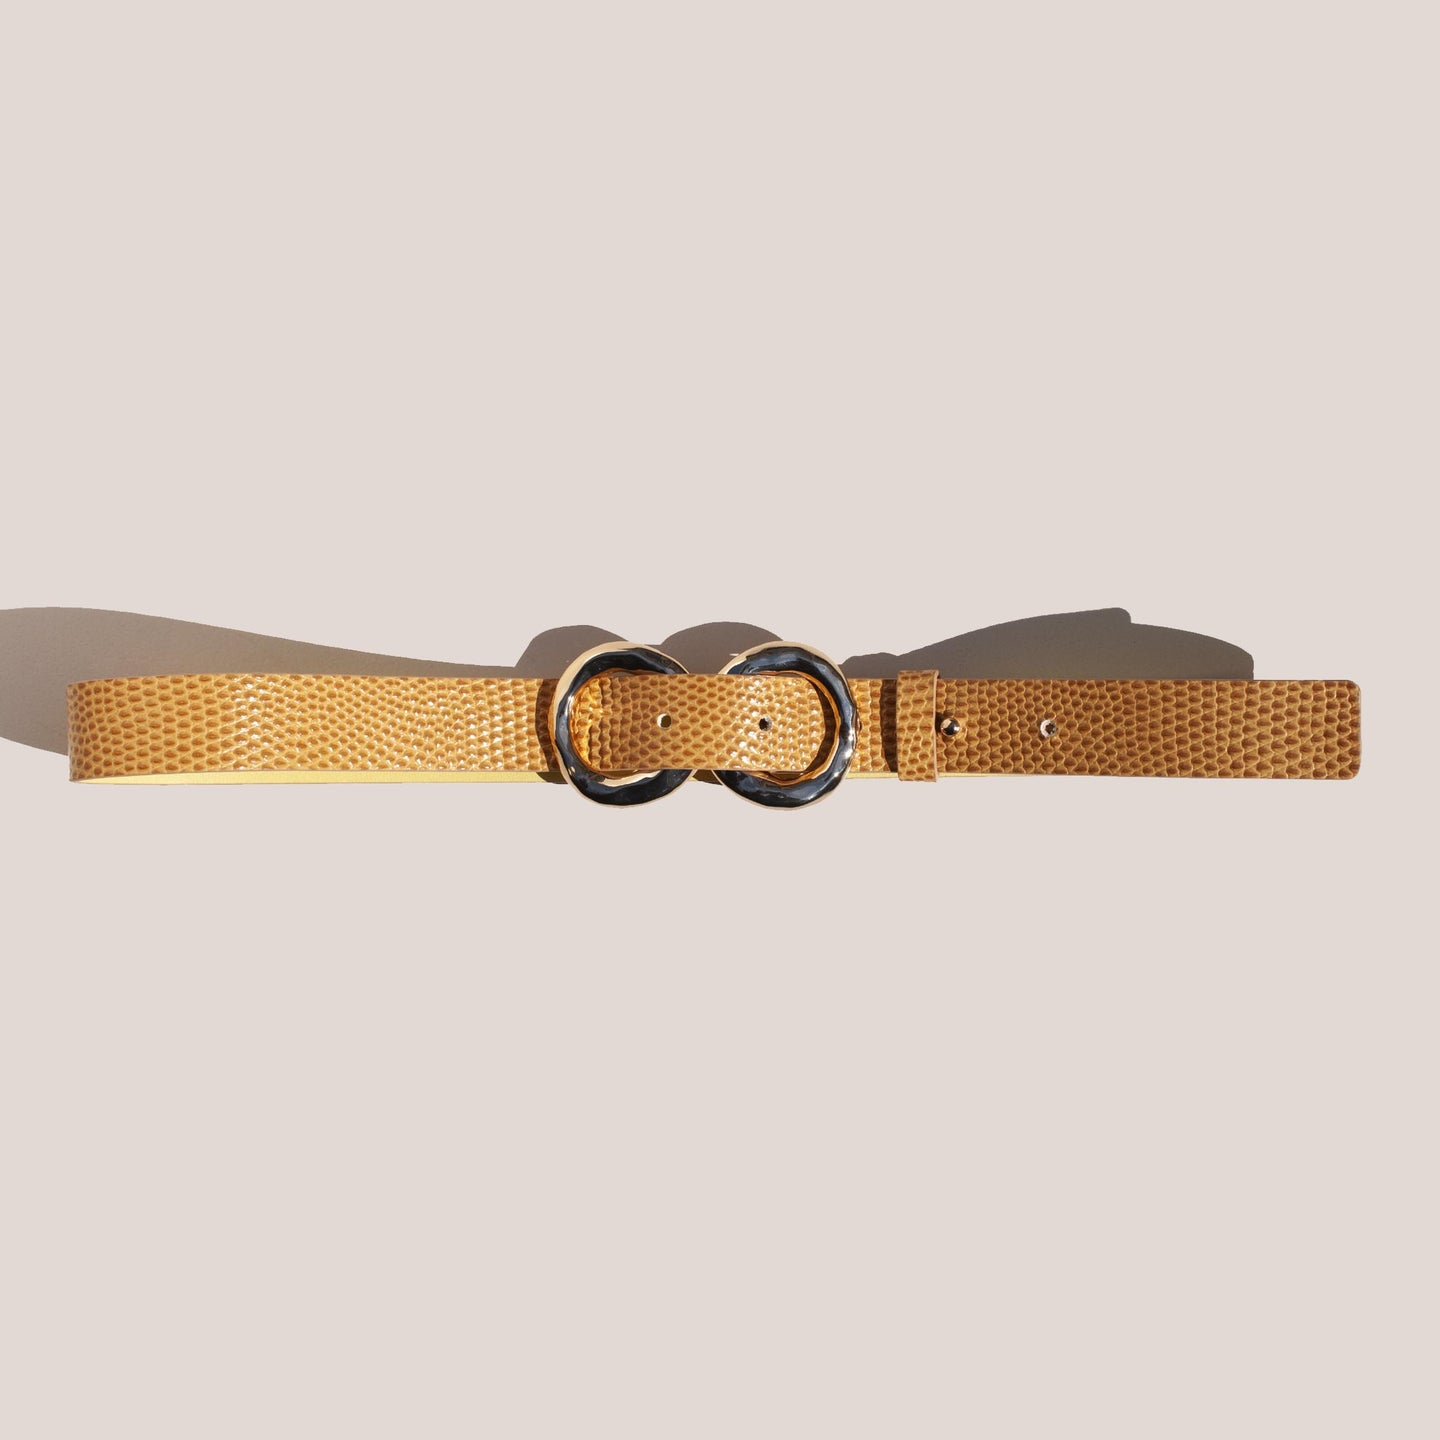 Rejina Pyo - Infinity Belt, front view, available at LCD.